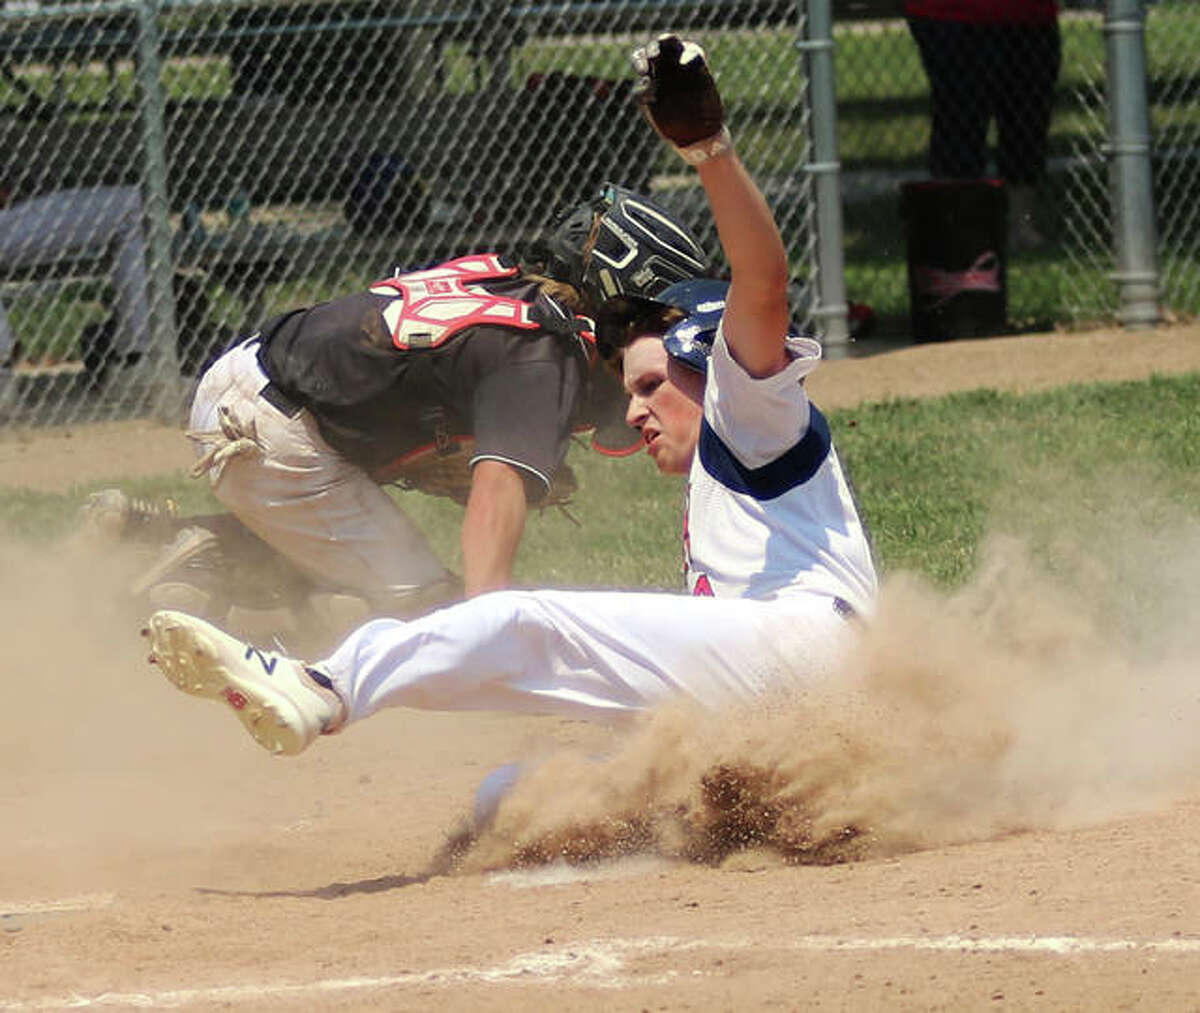 Brendon Smith of Alton Post 126 (right) had a pair of hits, including a home run, three RBIs and a pair of runs scored in Saturday's 10-9 loss to rival Highland in a losers bracket game in the Fifth Division Tournament in Centralia. He is shown sliding in with a run as Highland's catcher fields a wide throw in Alton's victory over Highland earlier this season victory in the championship game of the Firecracker Tournament.